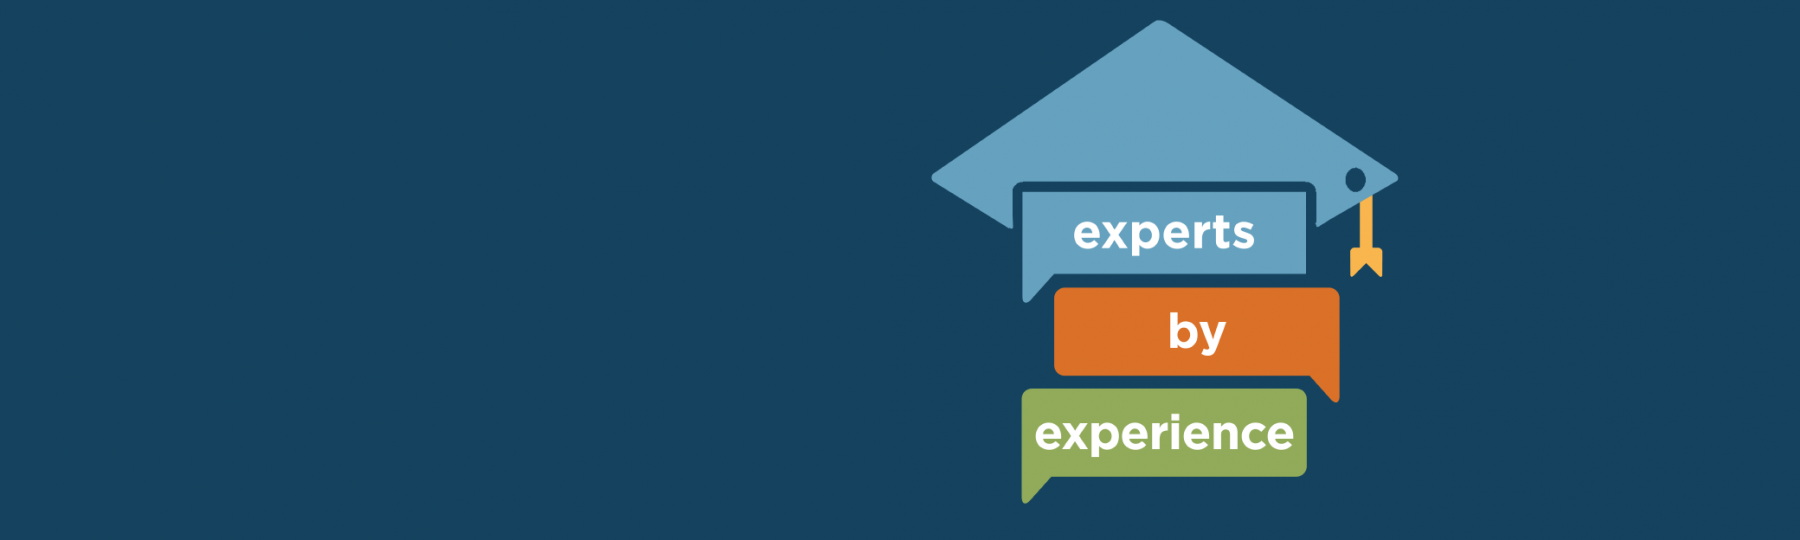 Experts by Experience logo